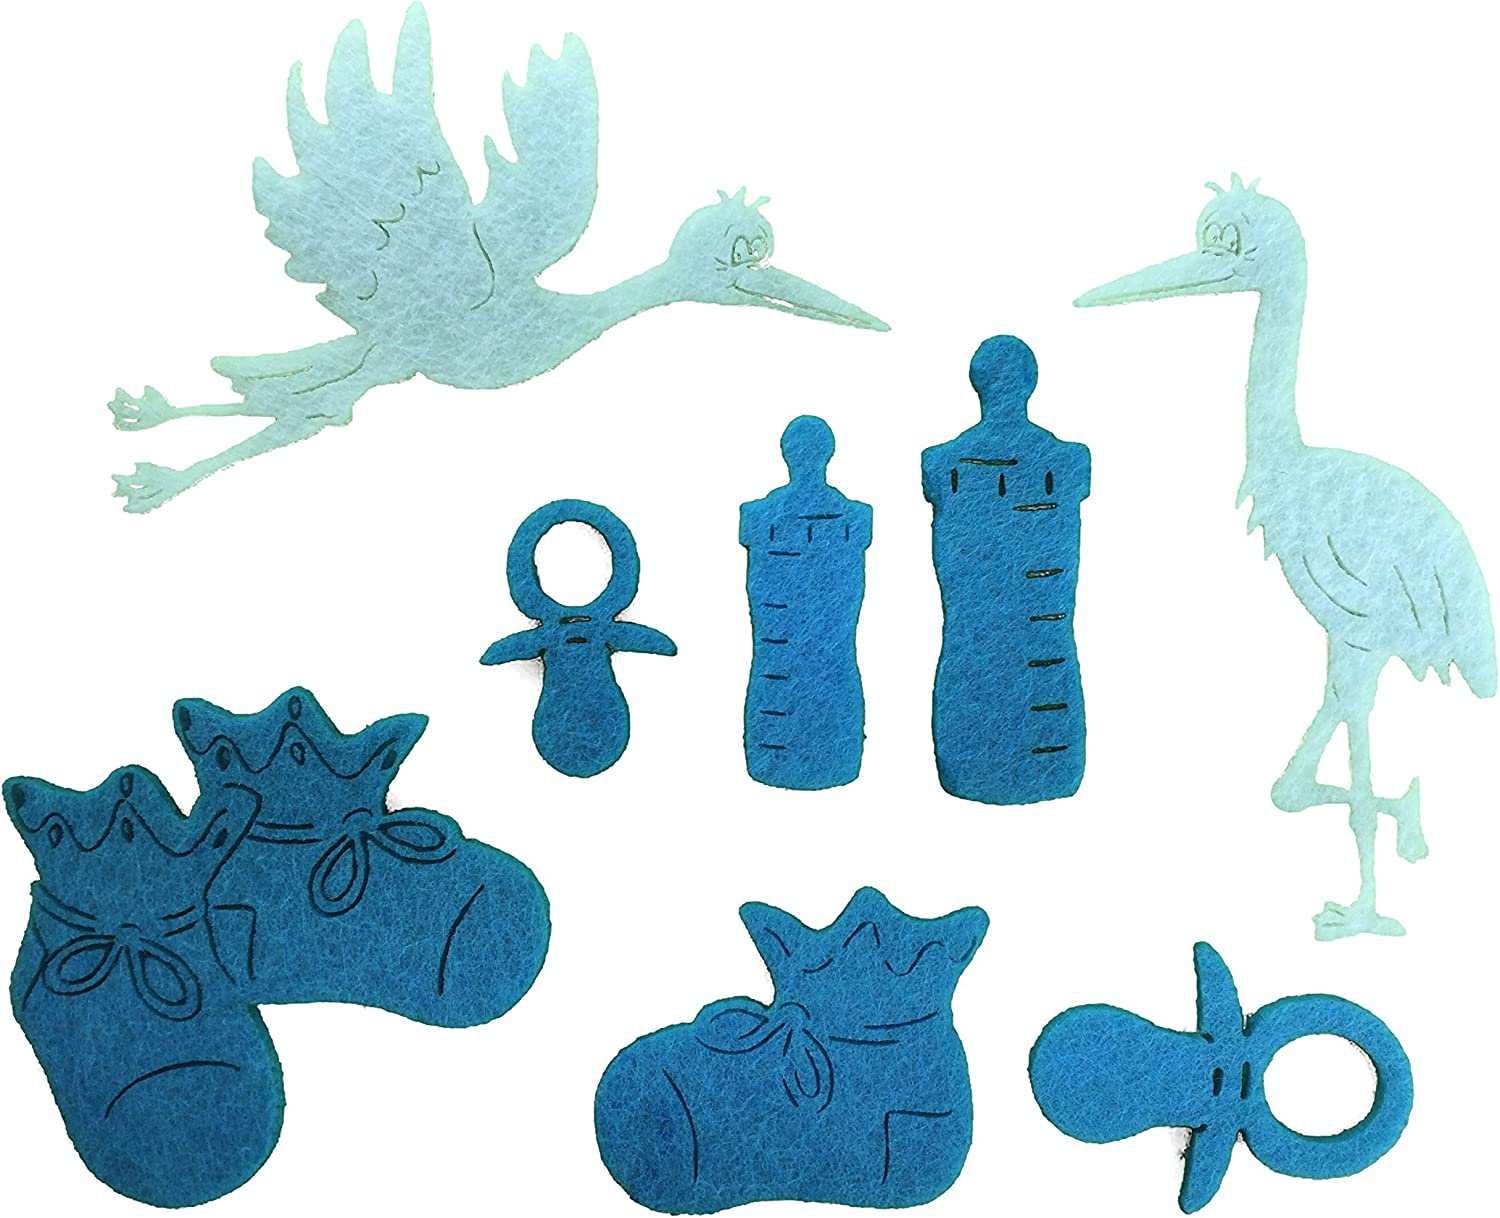 Petra's Craft News A Baby BYF8 CF47 Felt Set  62 Piece Set Consists of 60 Light bluee Felt Shapes and 2 Storks in White